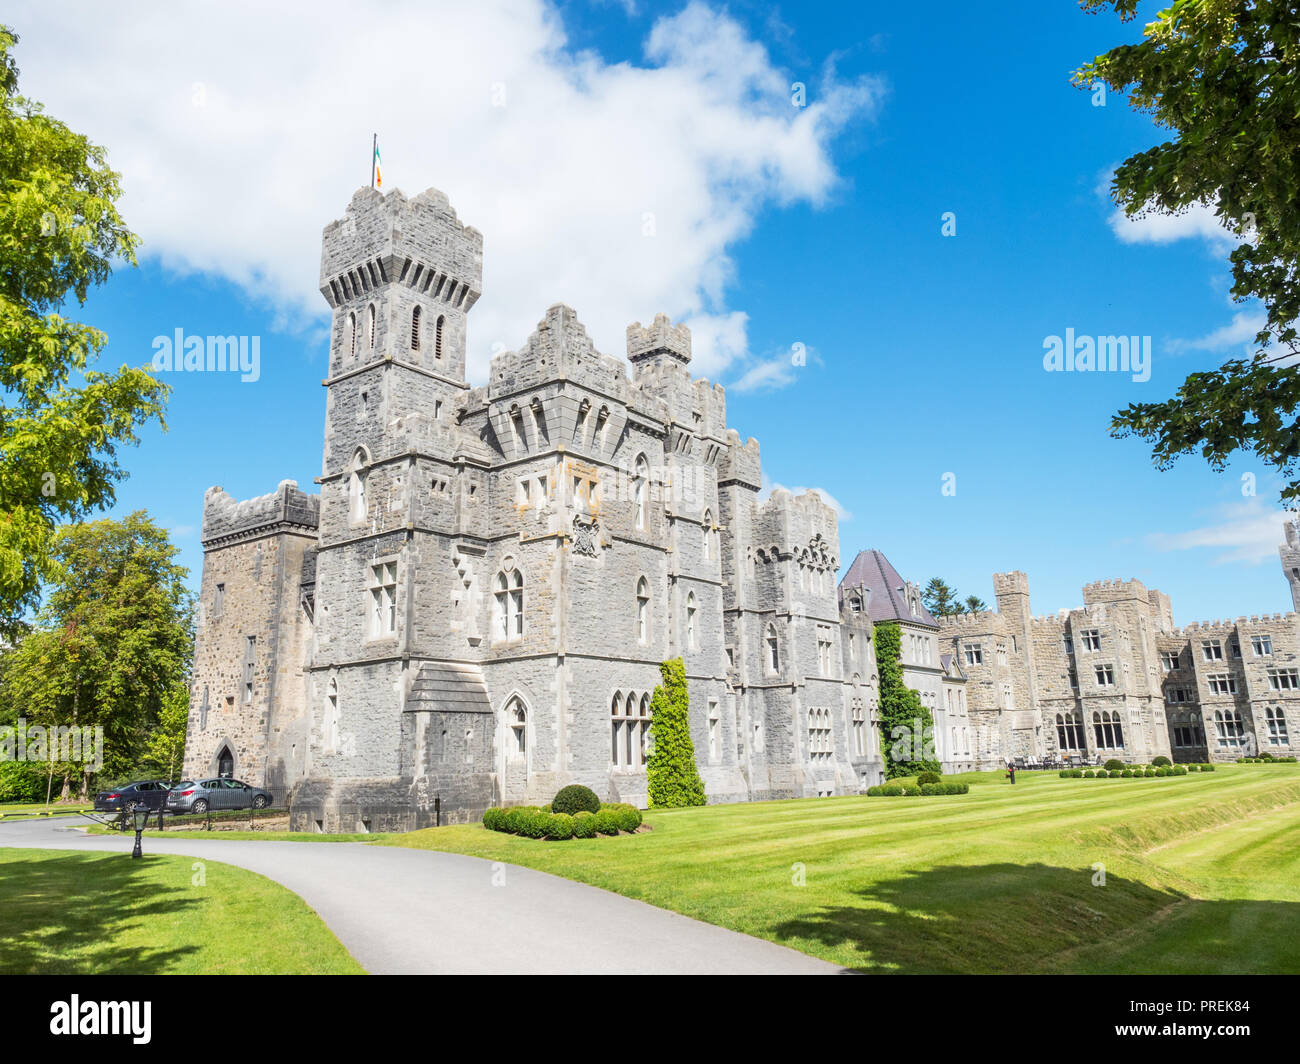 Ashford Castle Is A Medieval And Victorian Castle That Has Been